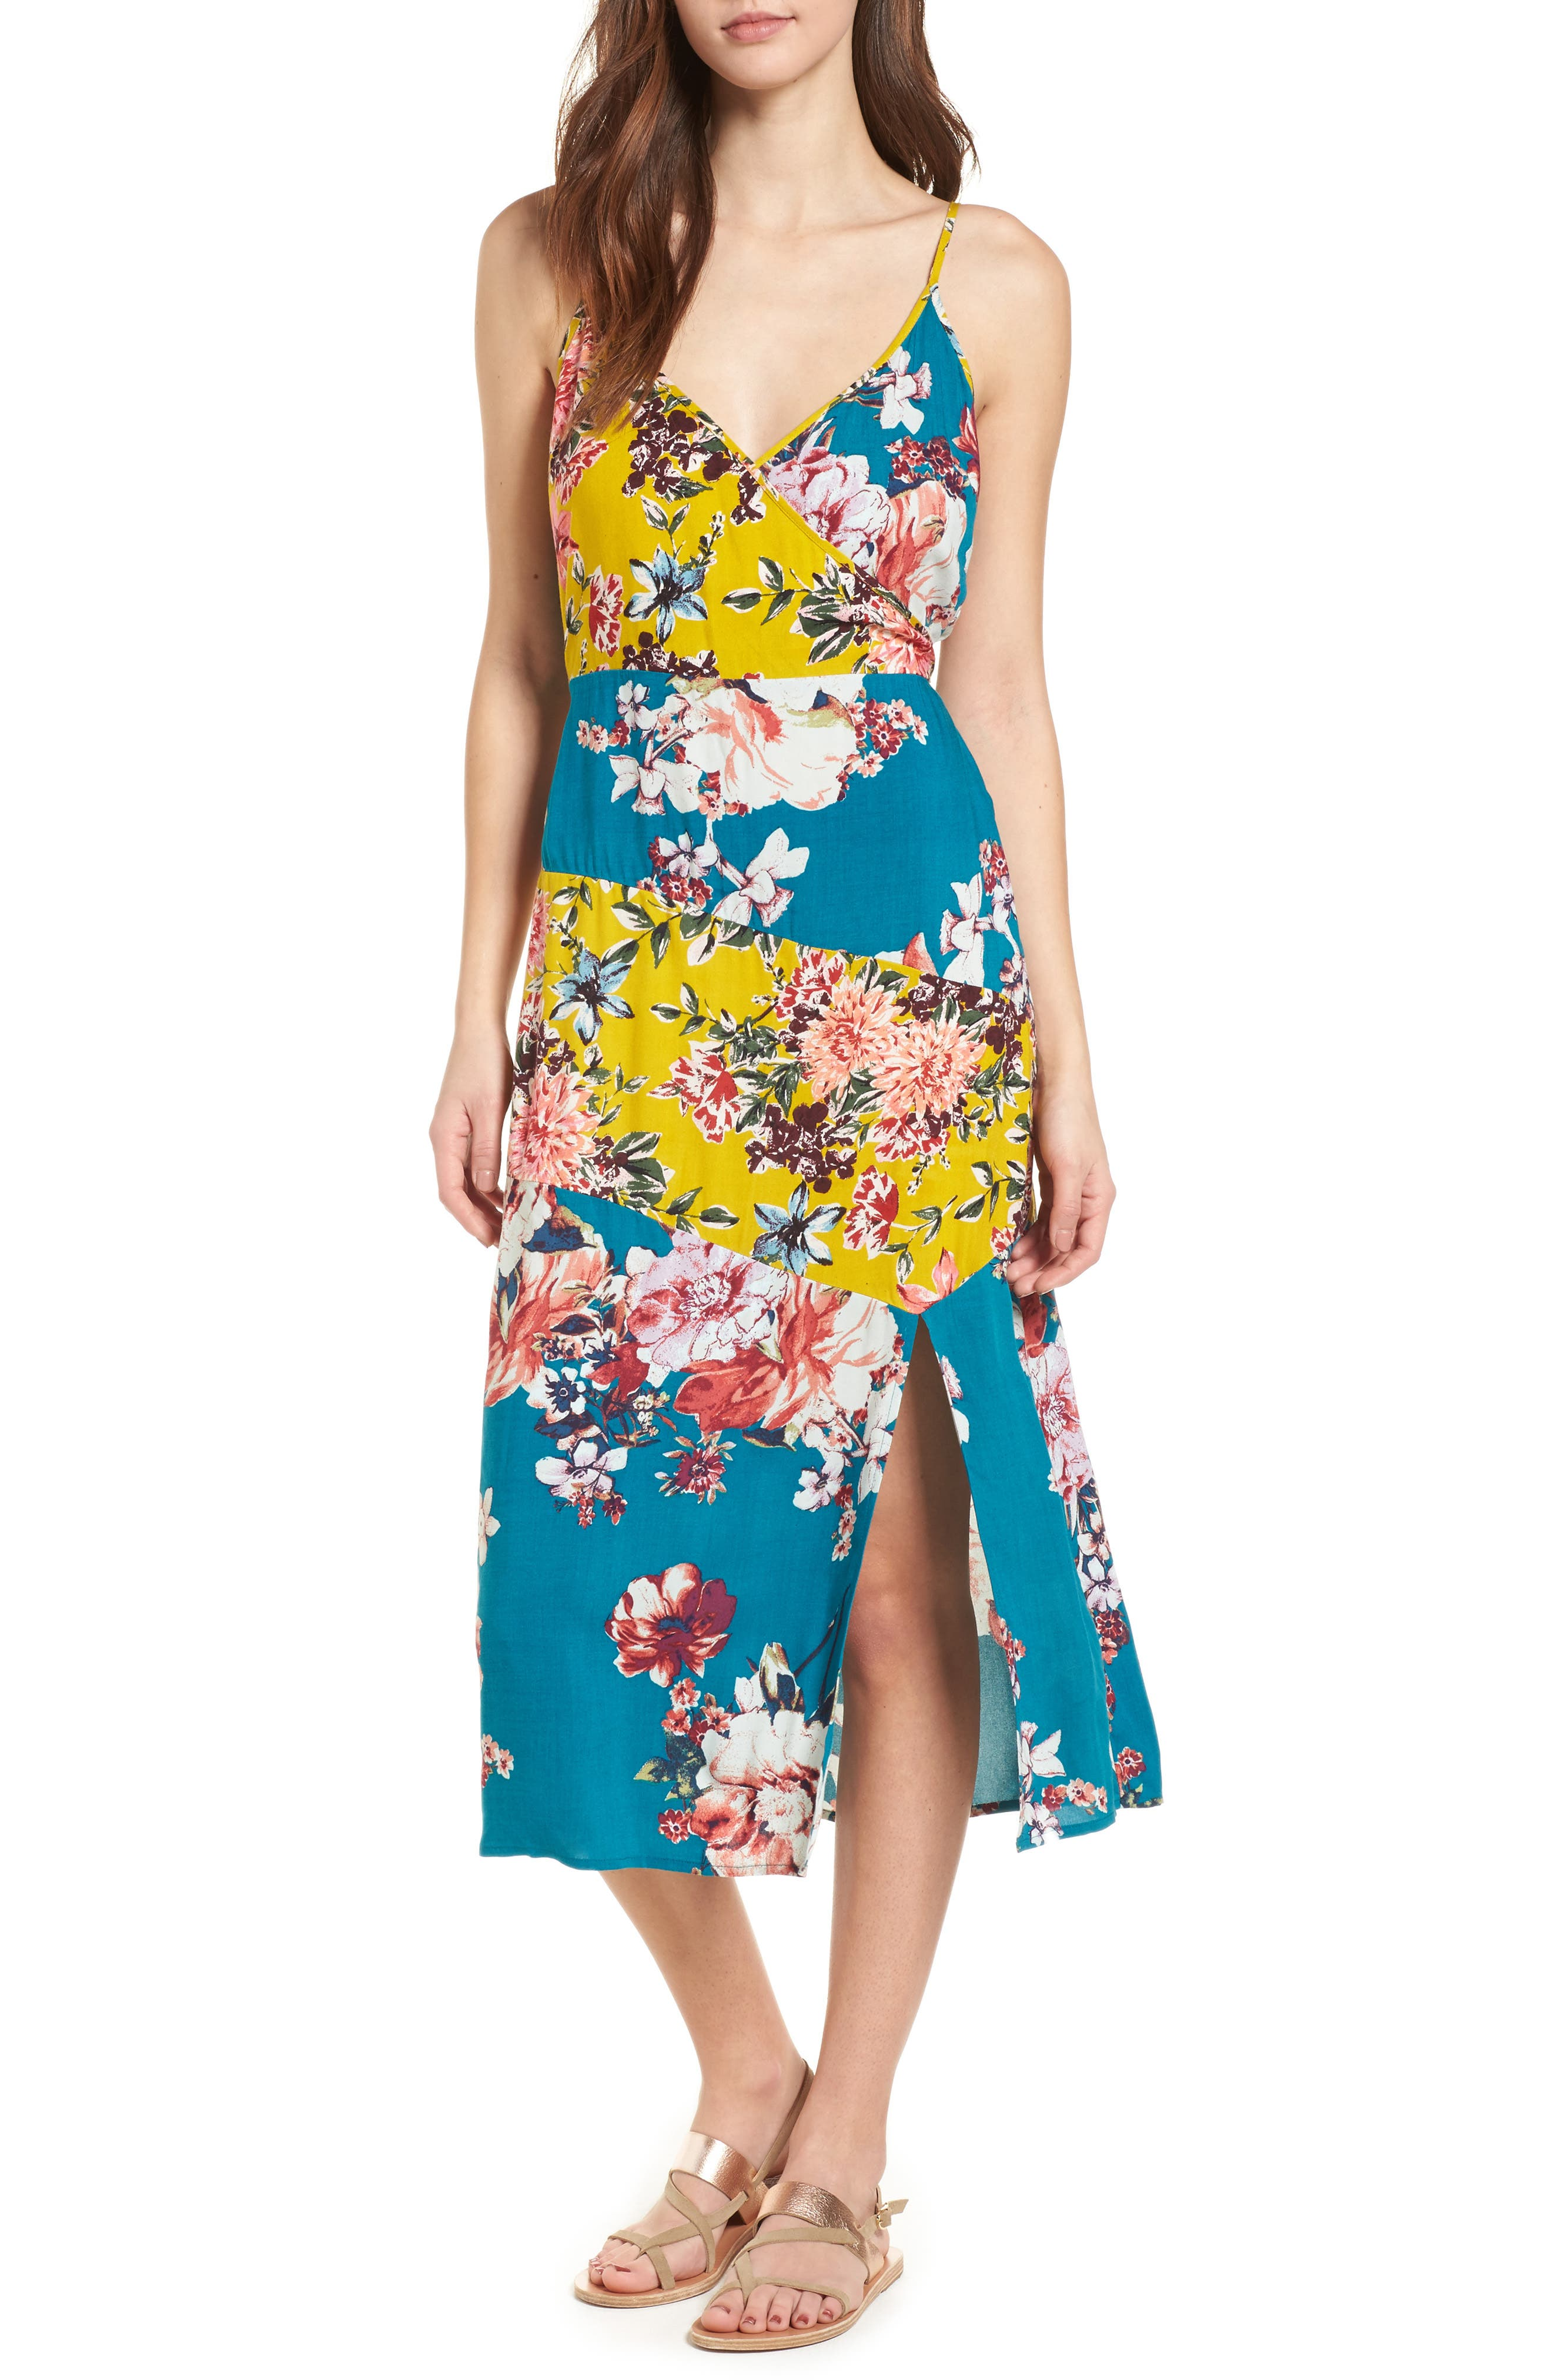 Mix Floral Midi Dress,                         Main,                         color, Teal/ Peach